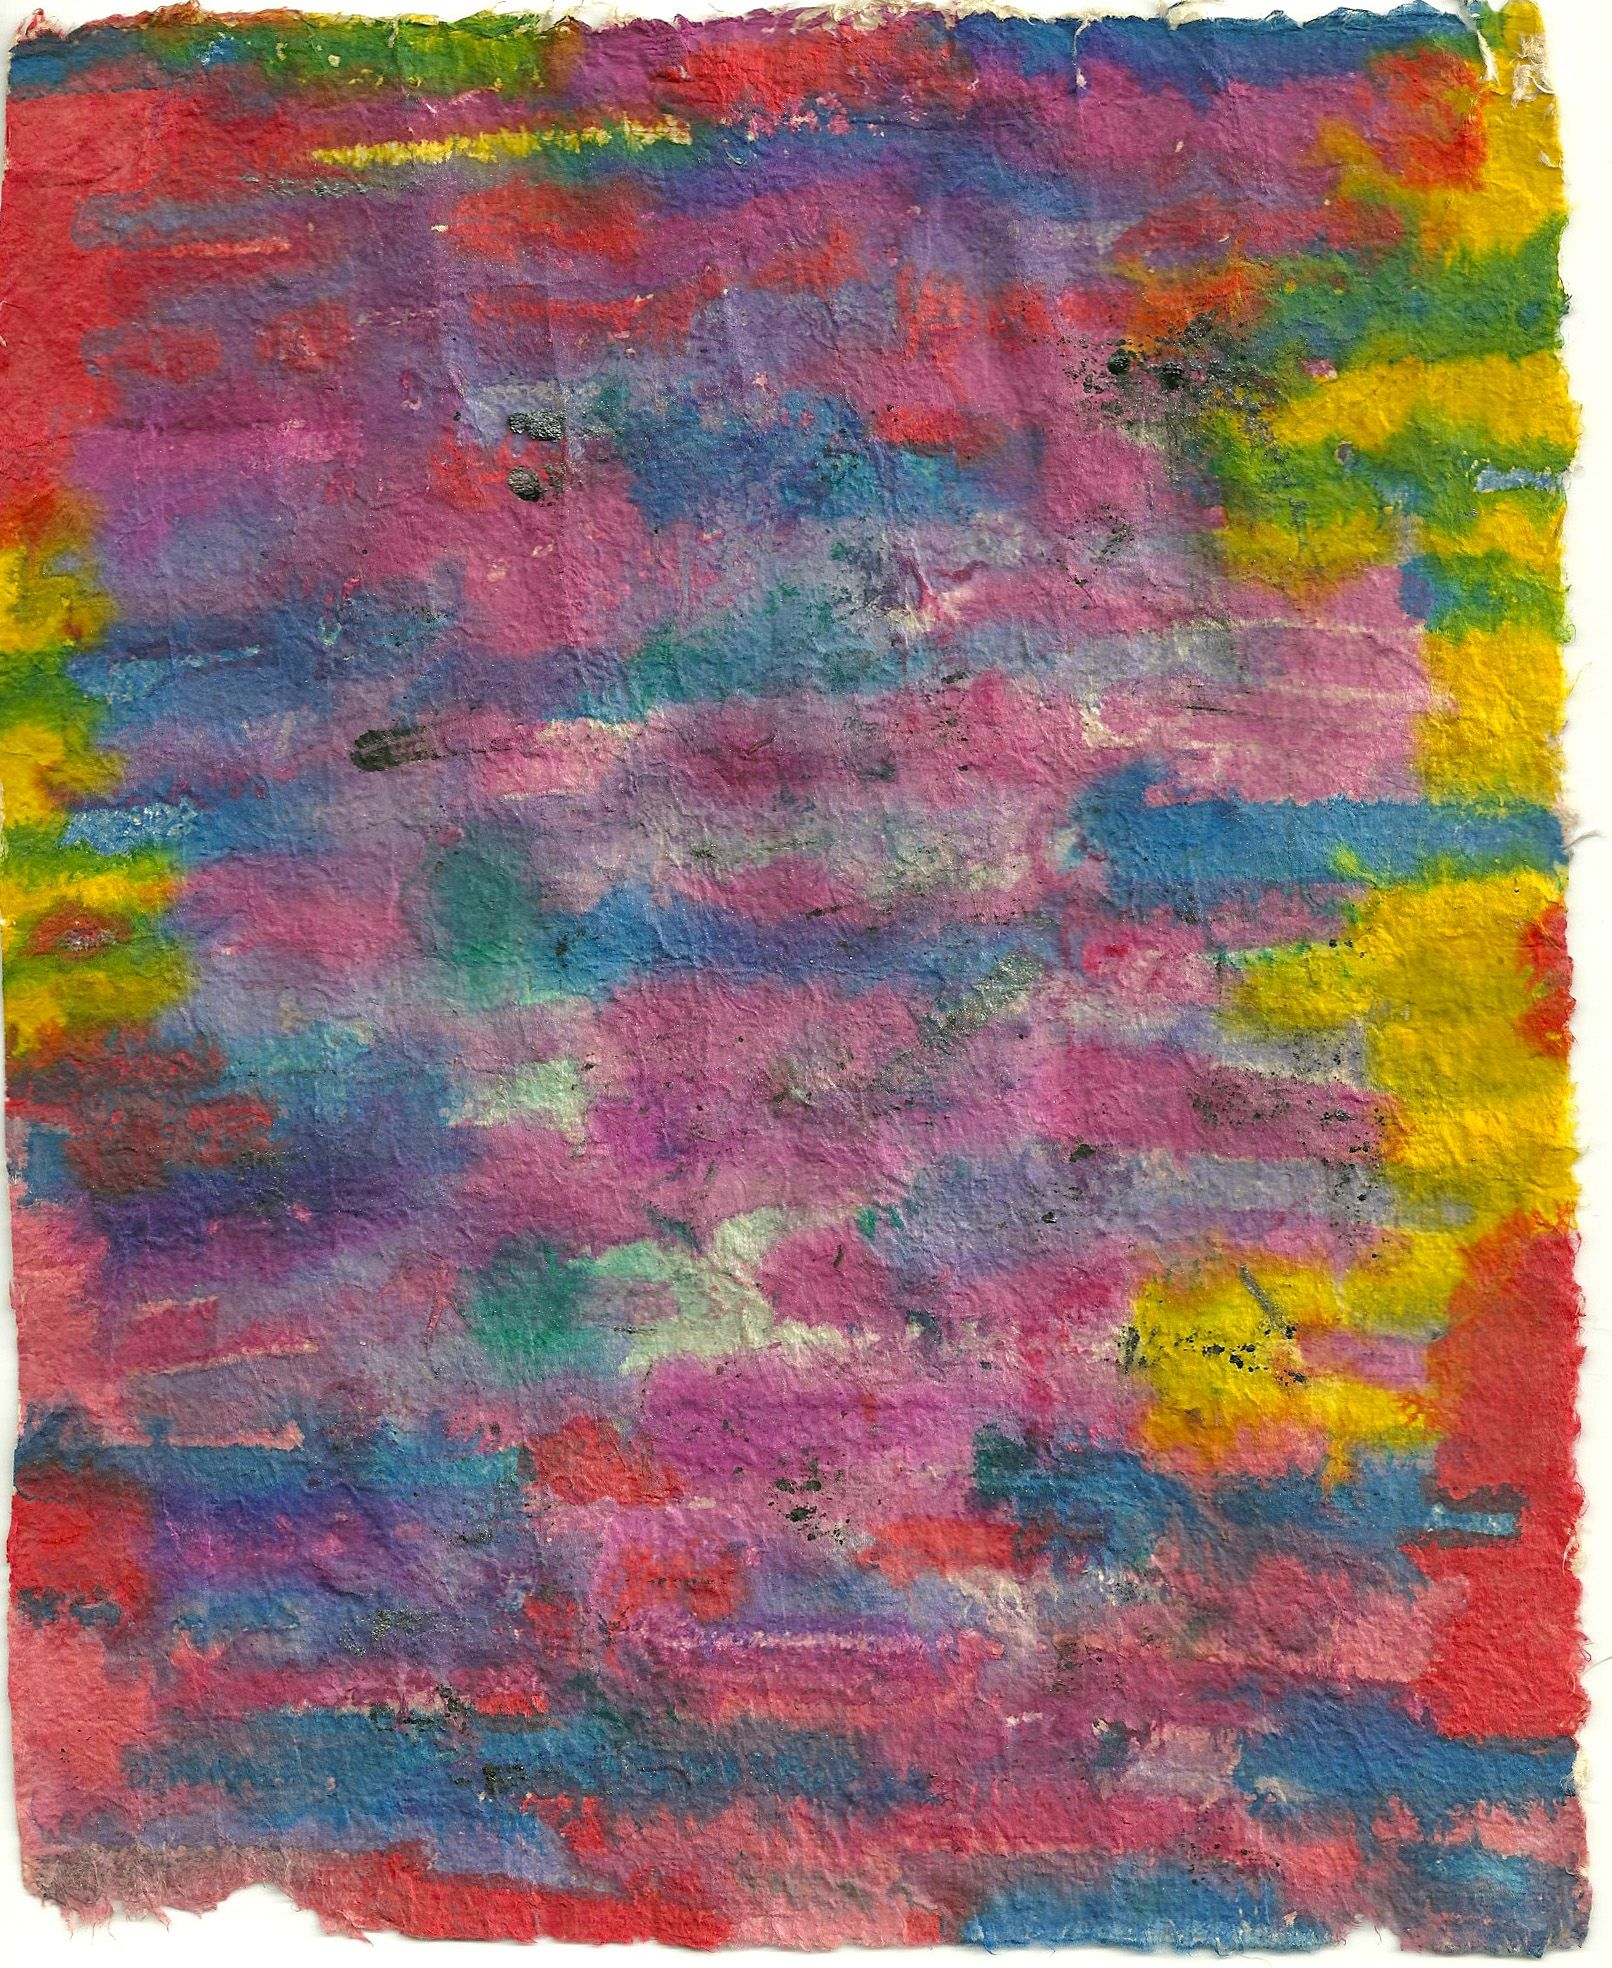 Handmade paper and ink